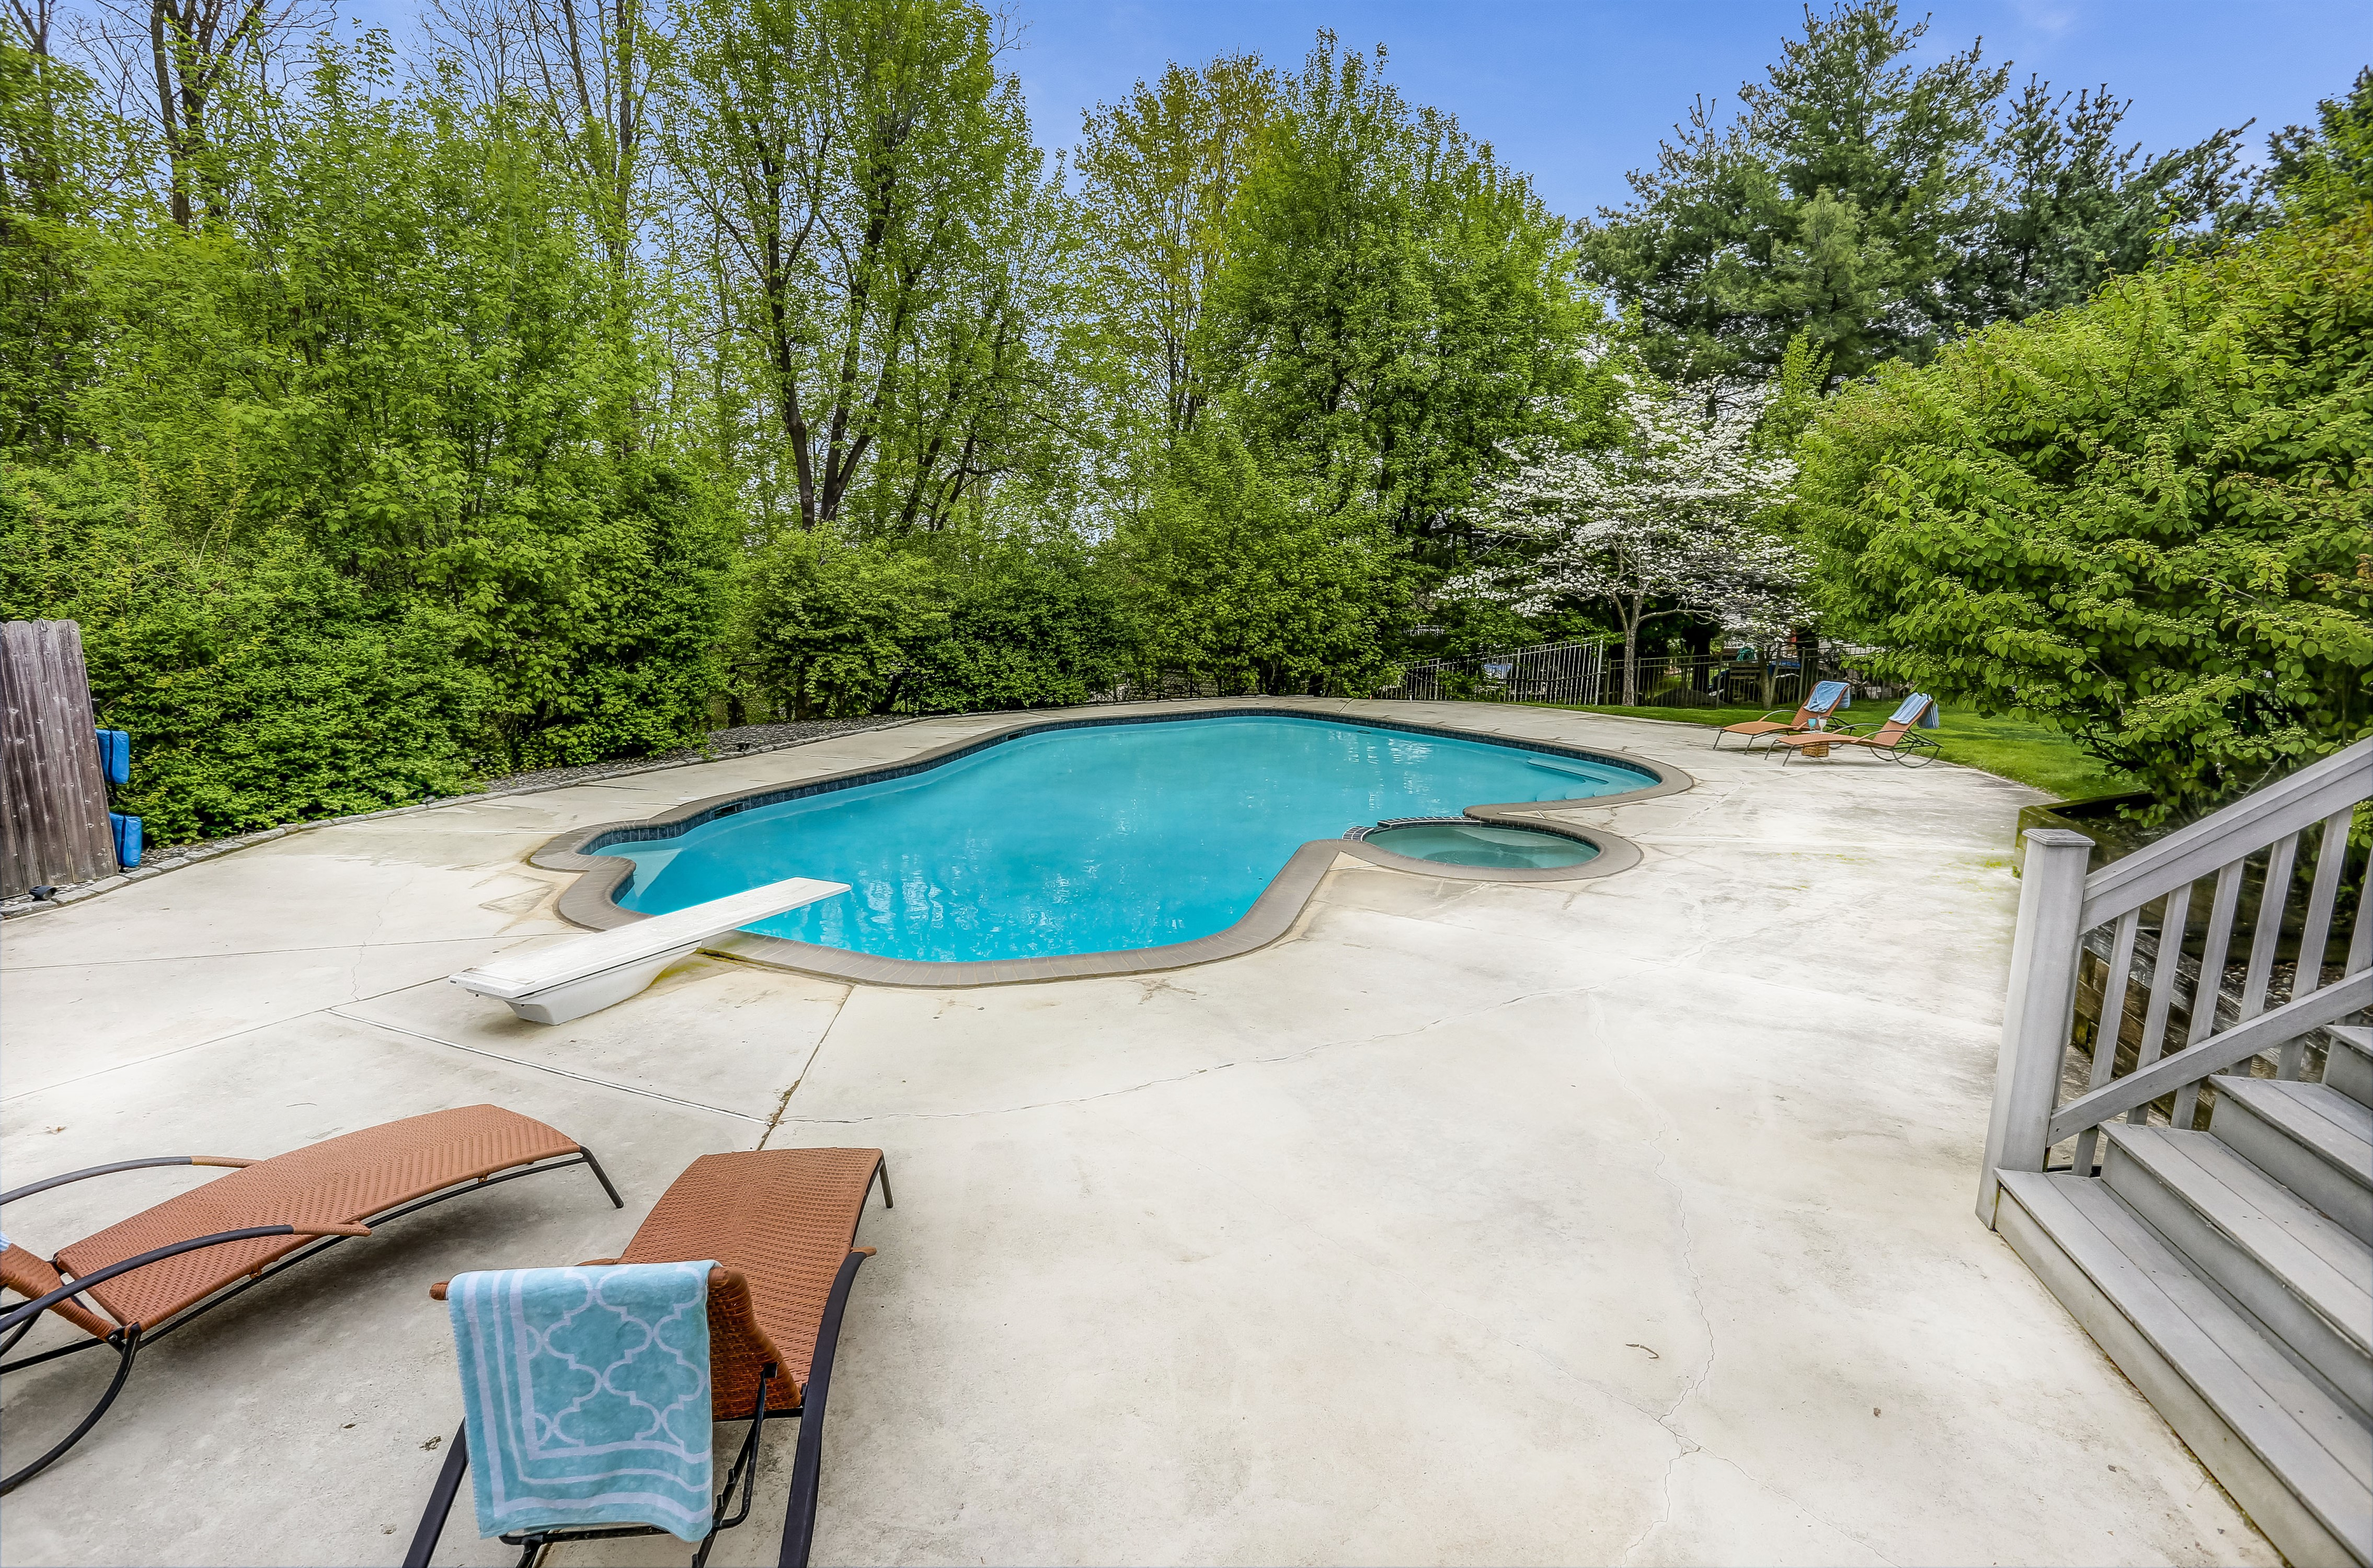 Backyard oasis with heated pool, hot tub and huge deck for entertaining!